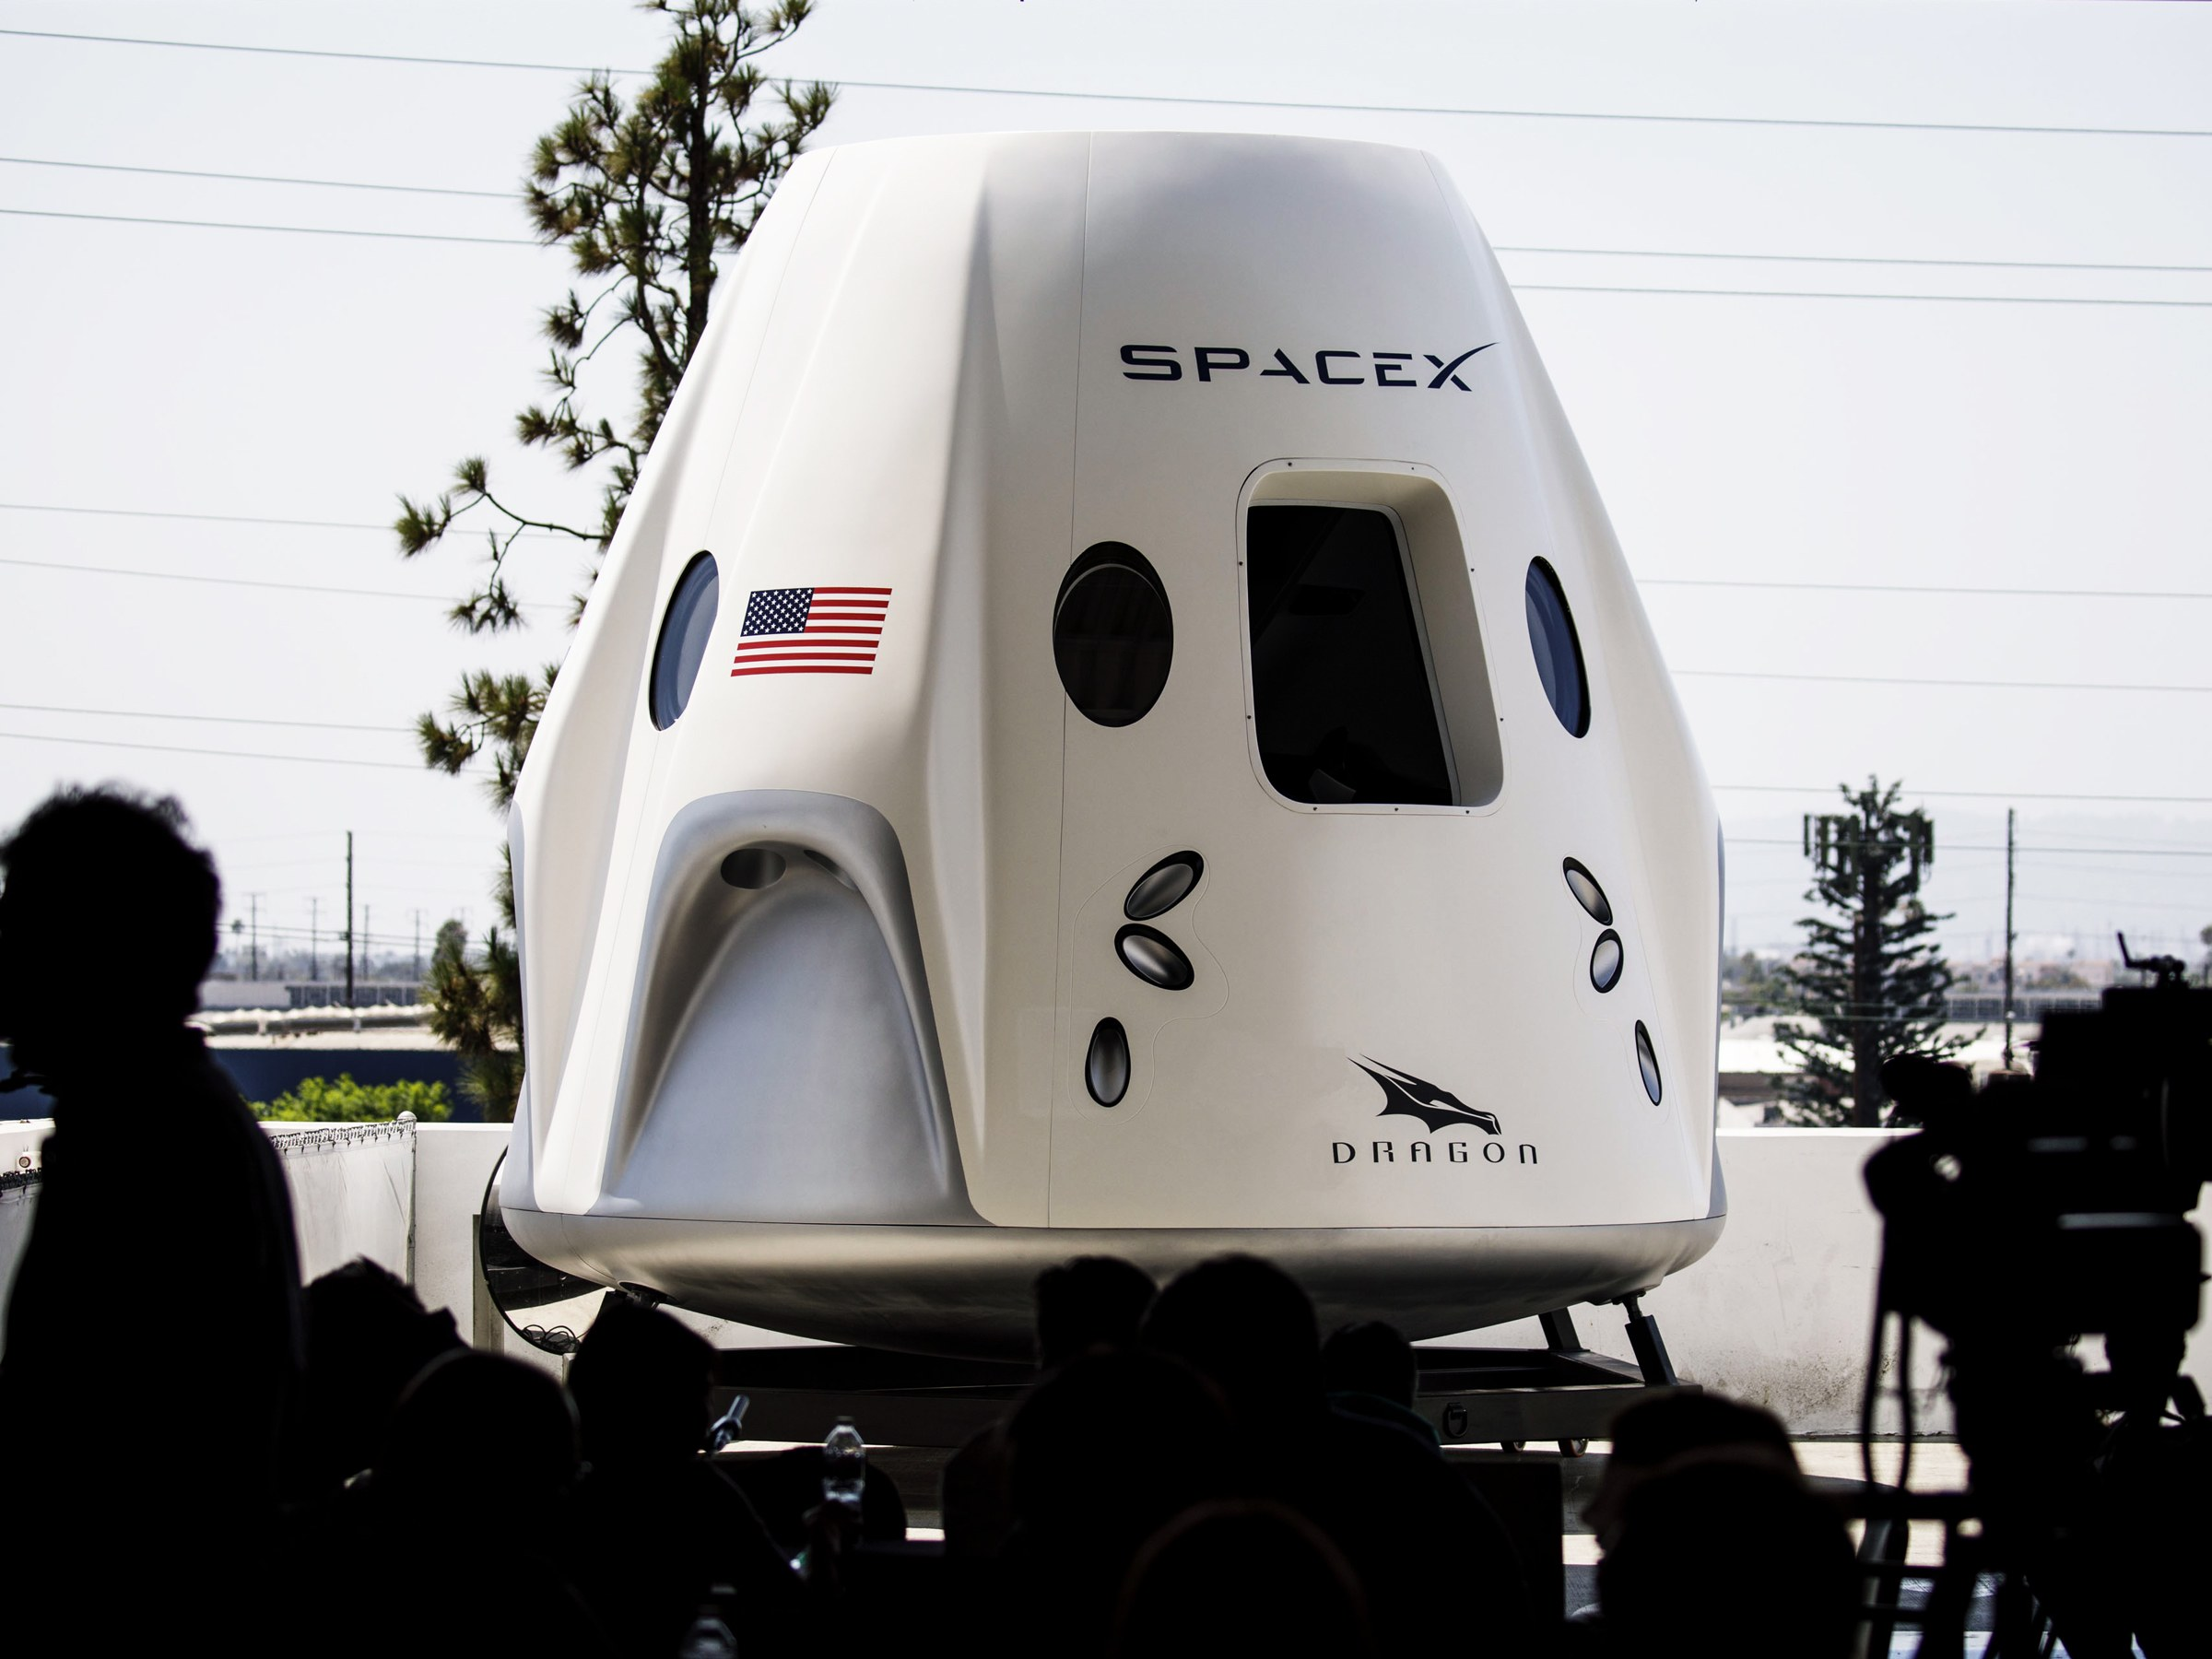 Get an Inside Look at SpaceX's Astronaut Training Sims